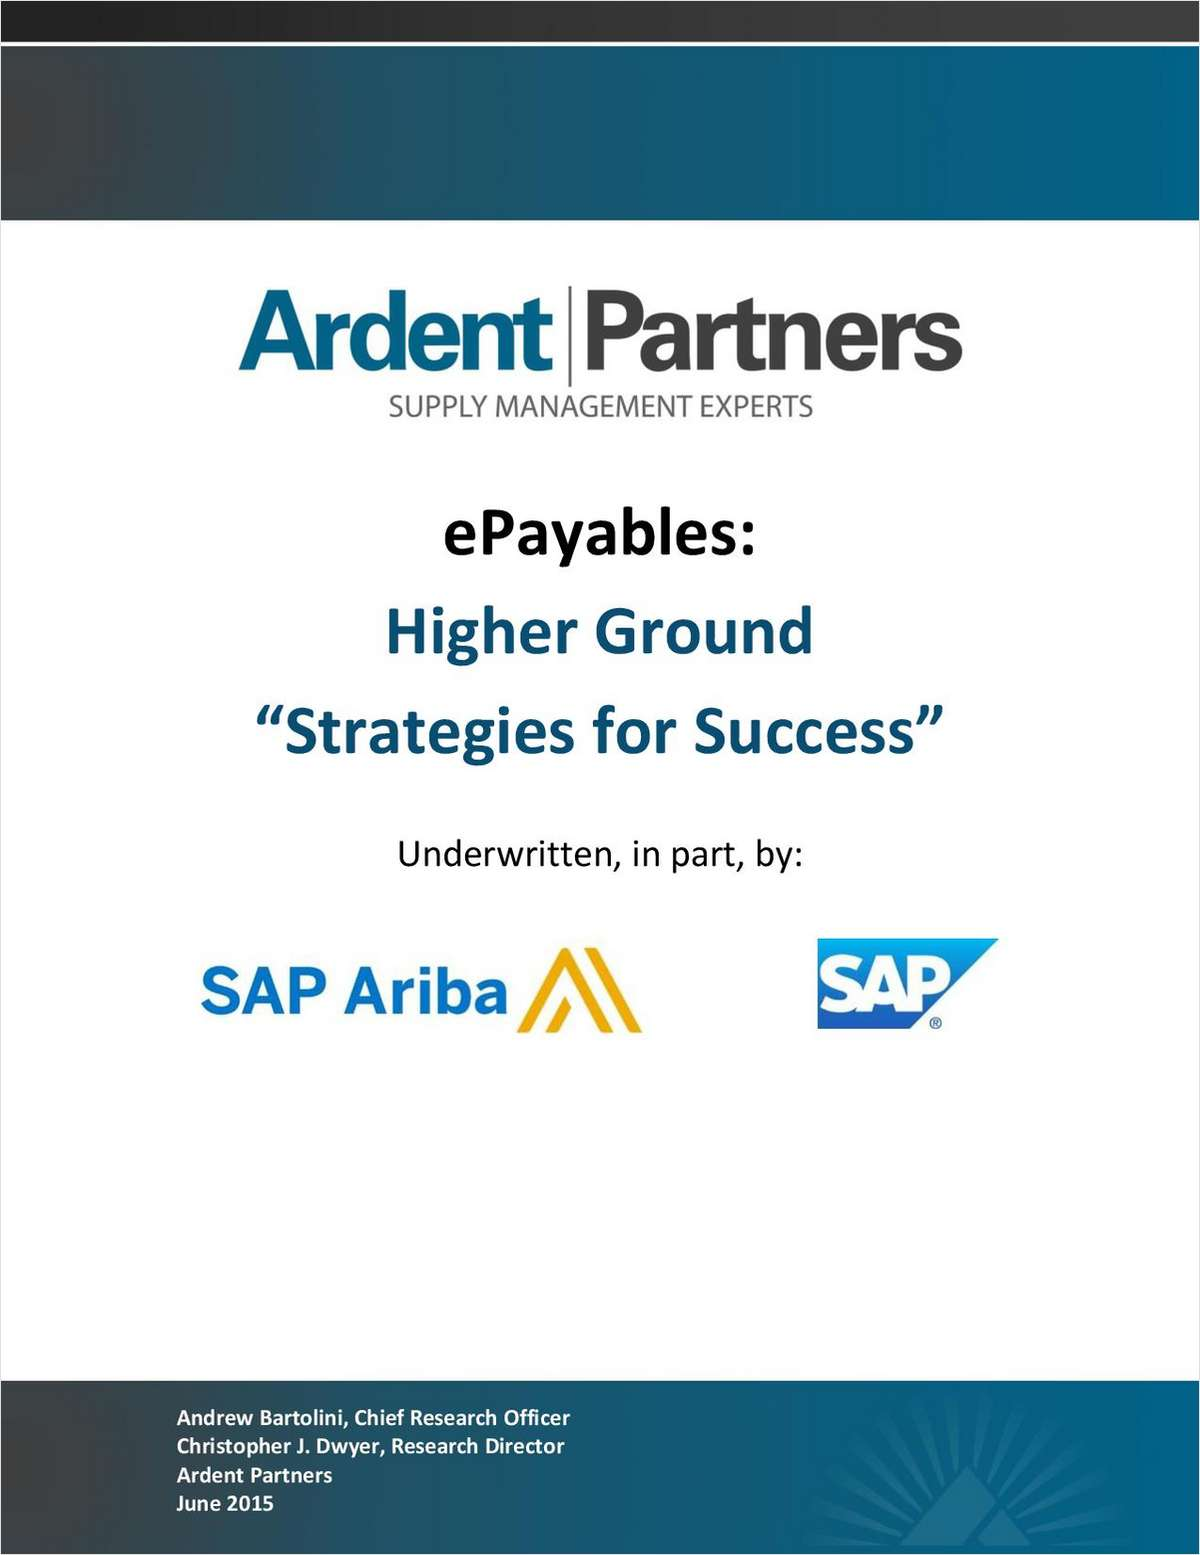 ePayables: Higher Ground - Strategies for Success